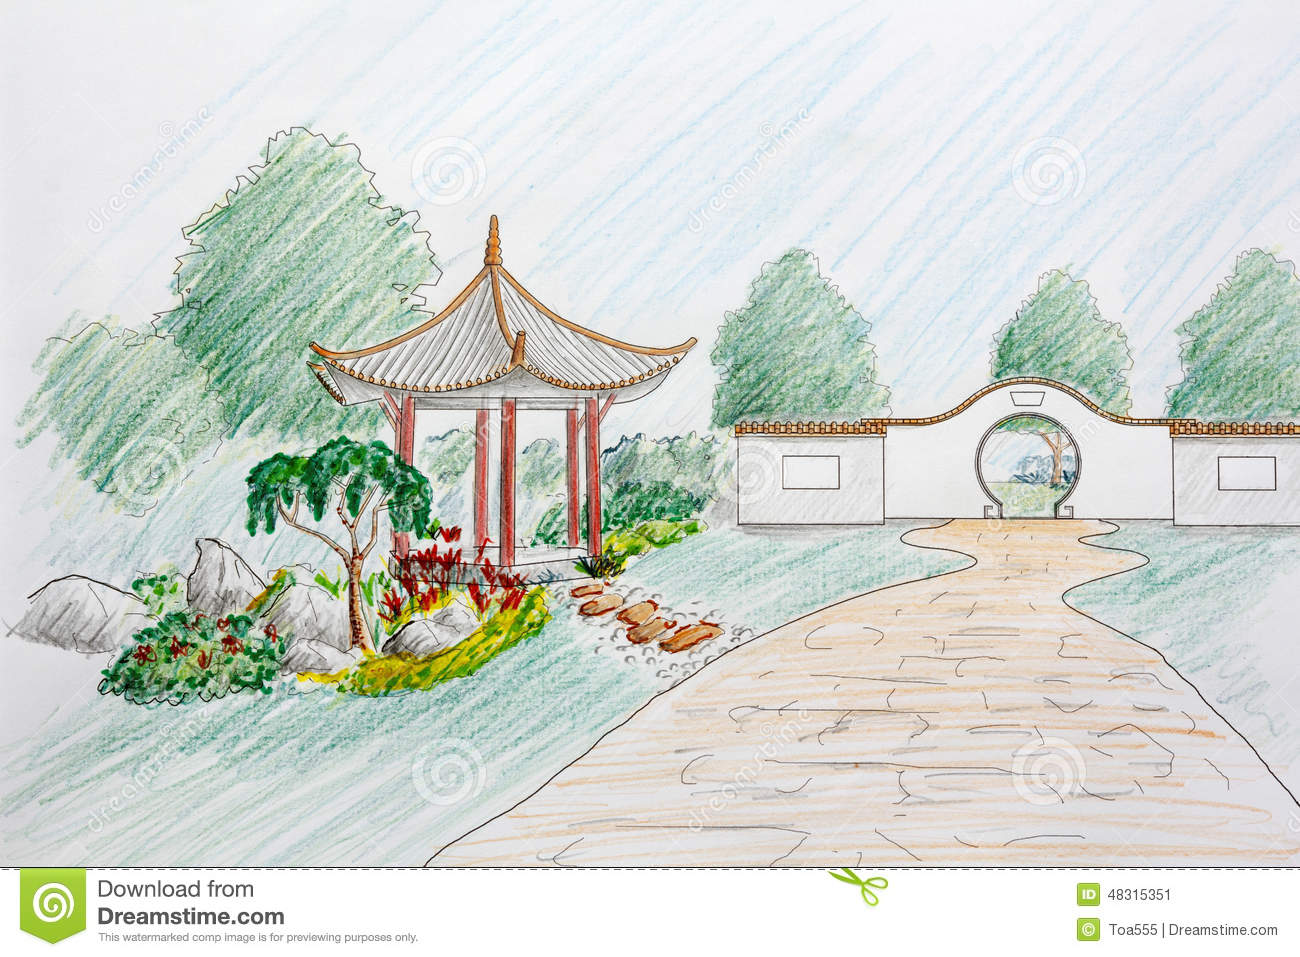 Plan chinois de jardin de conception d 39 architecte for Plan de conception de plan libre